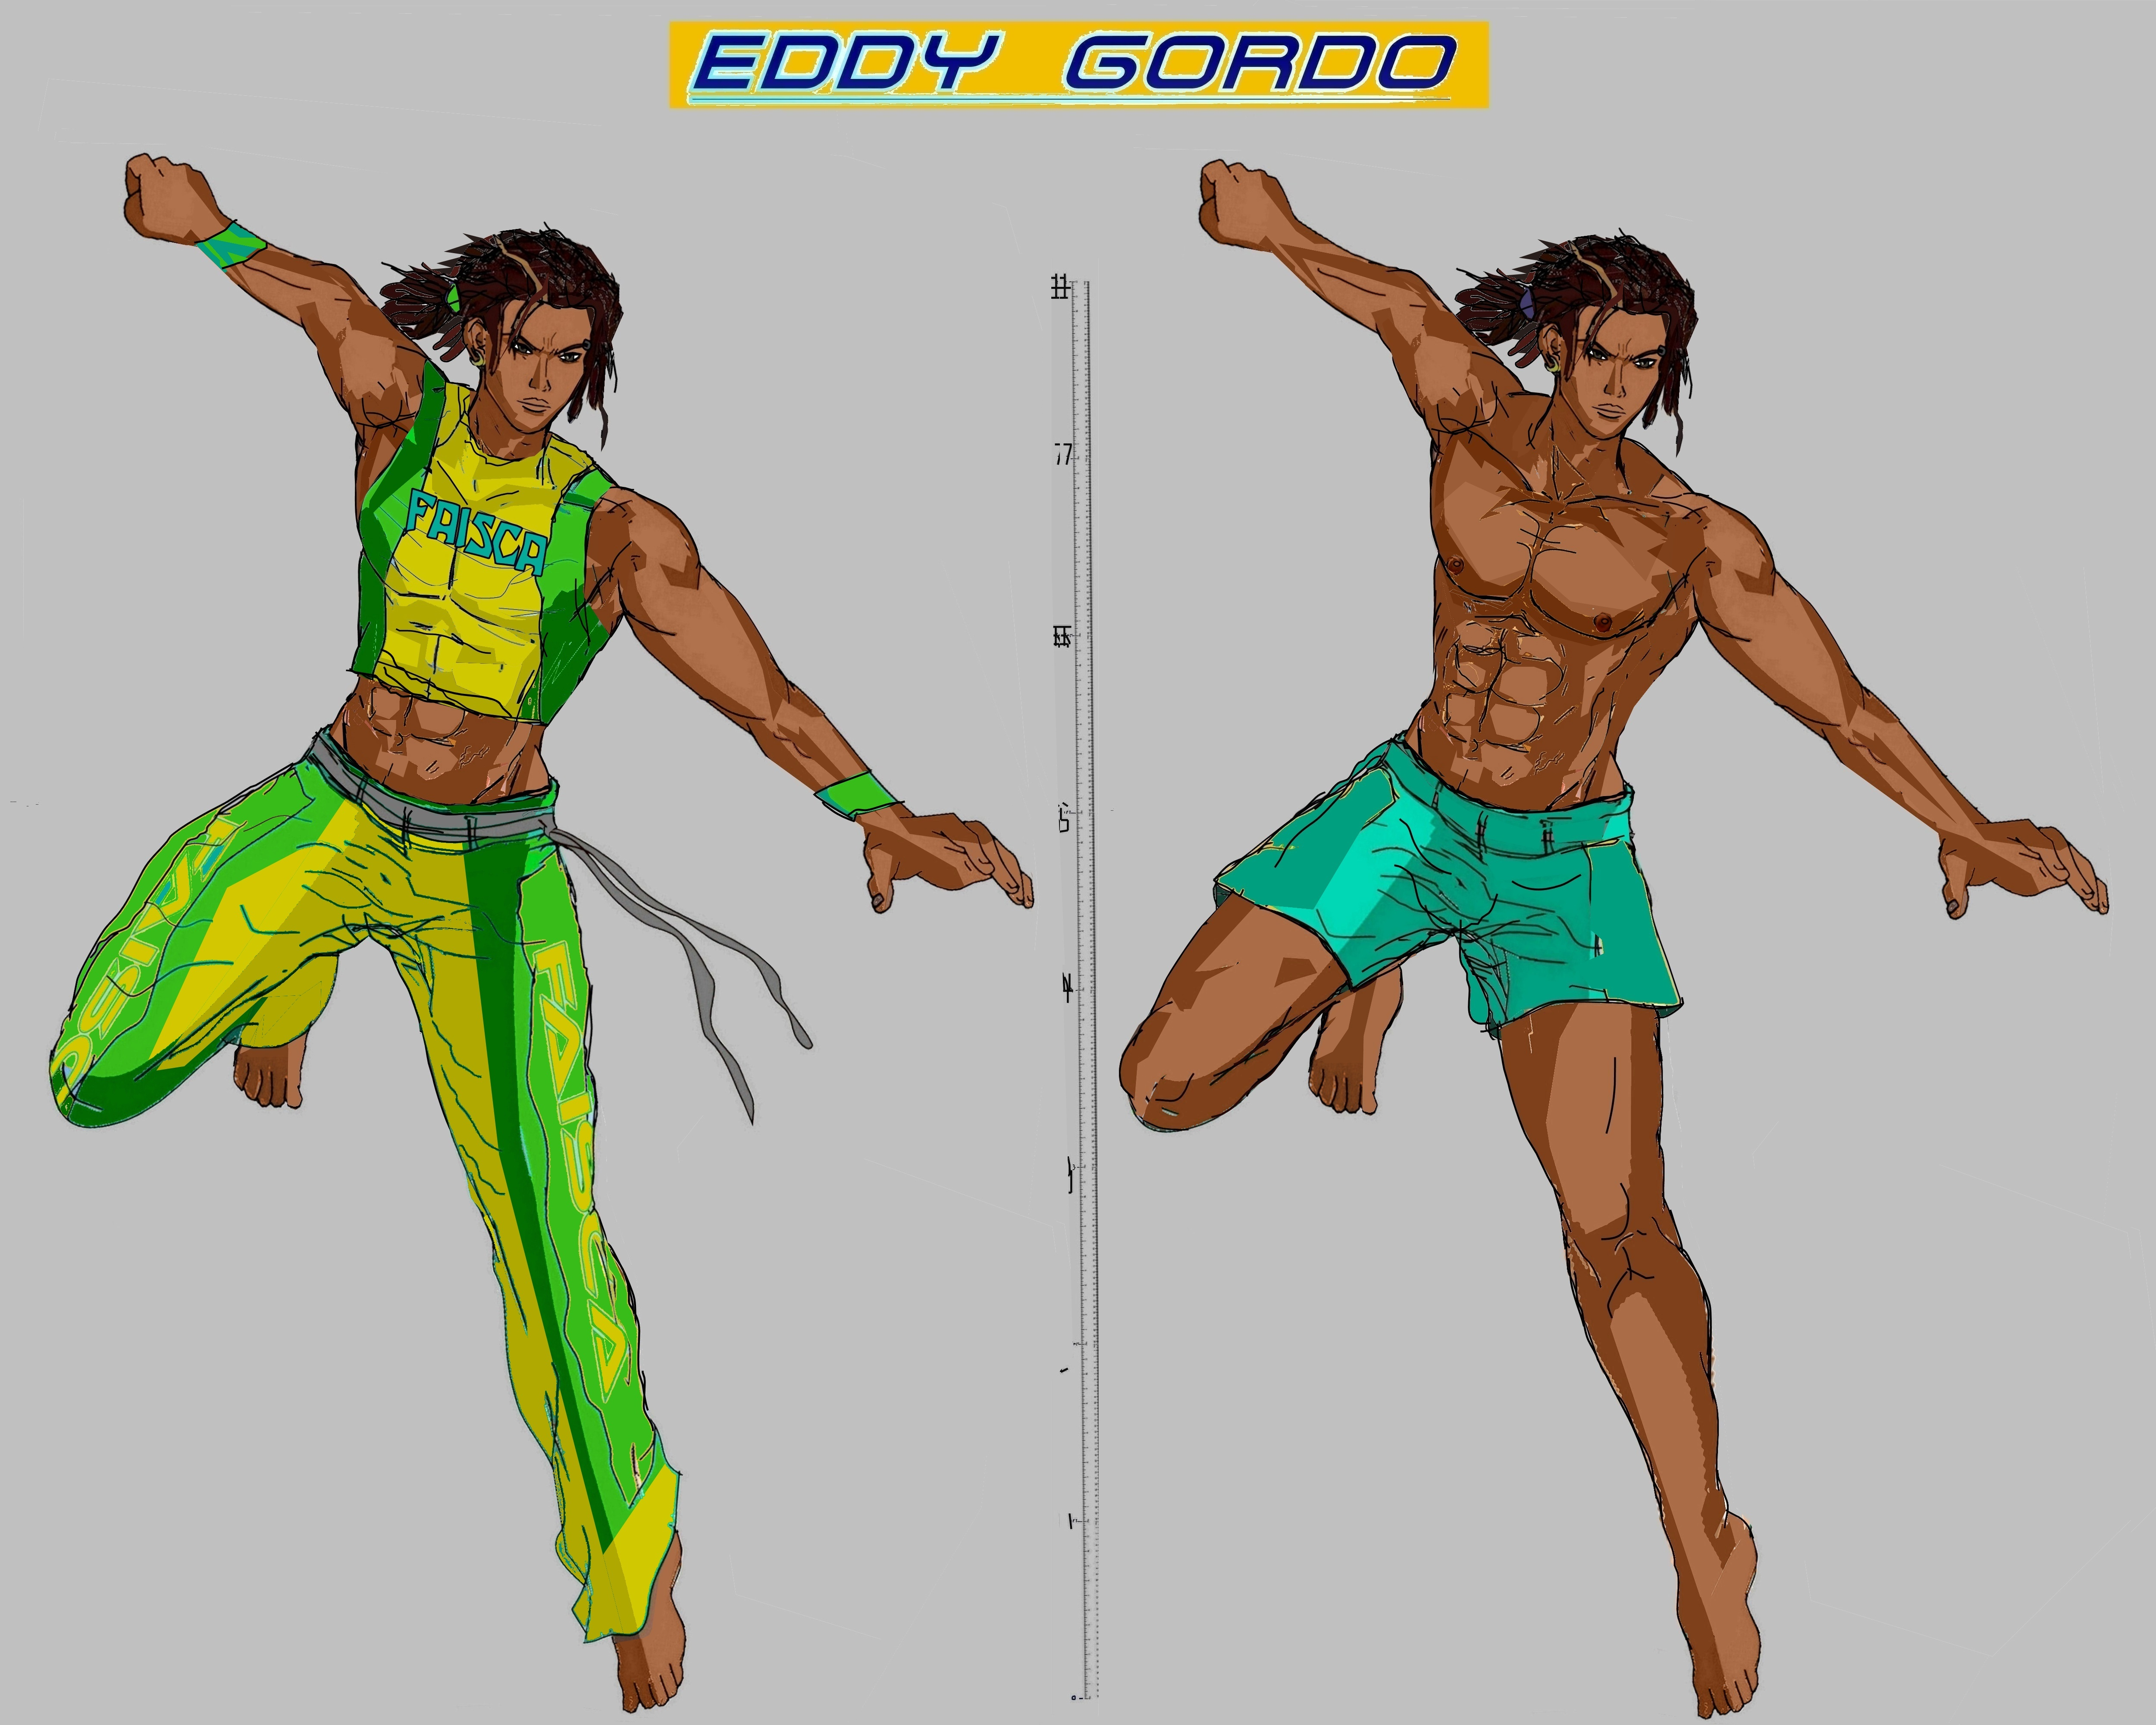 tekken 7 eddy gordo by la laker on deviantart deviantart